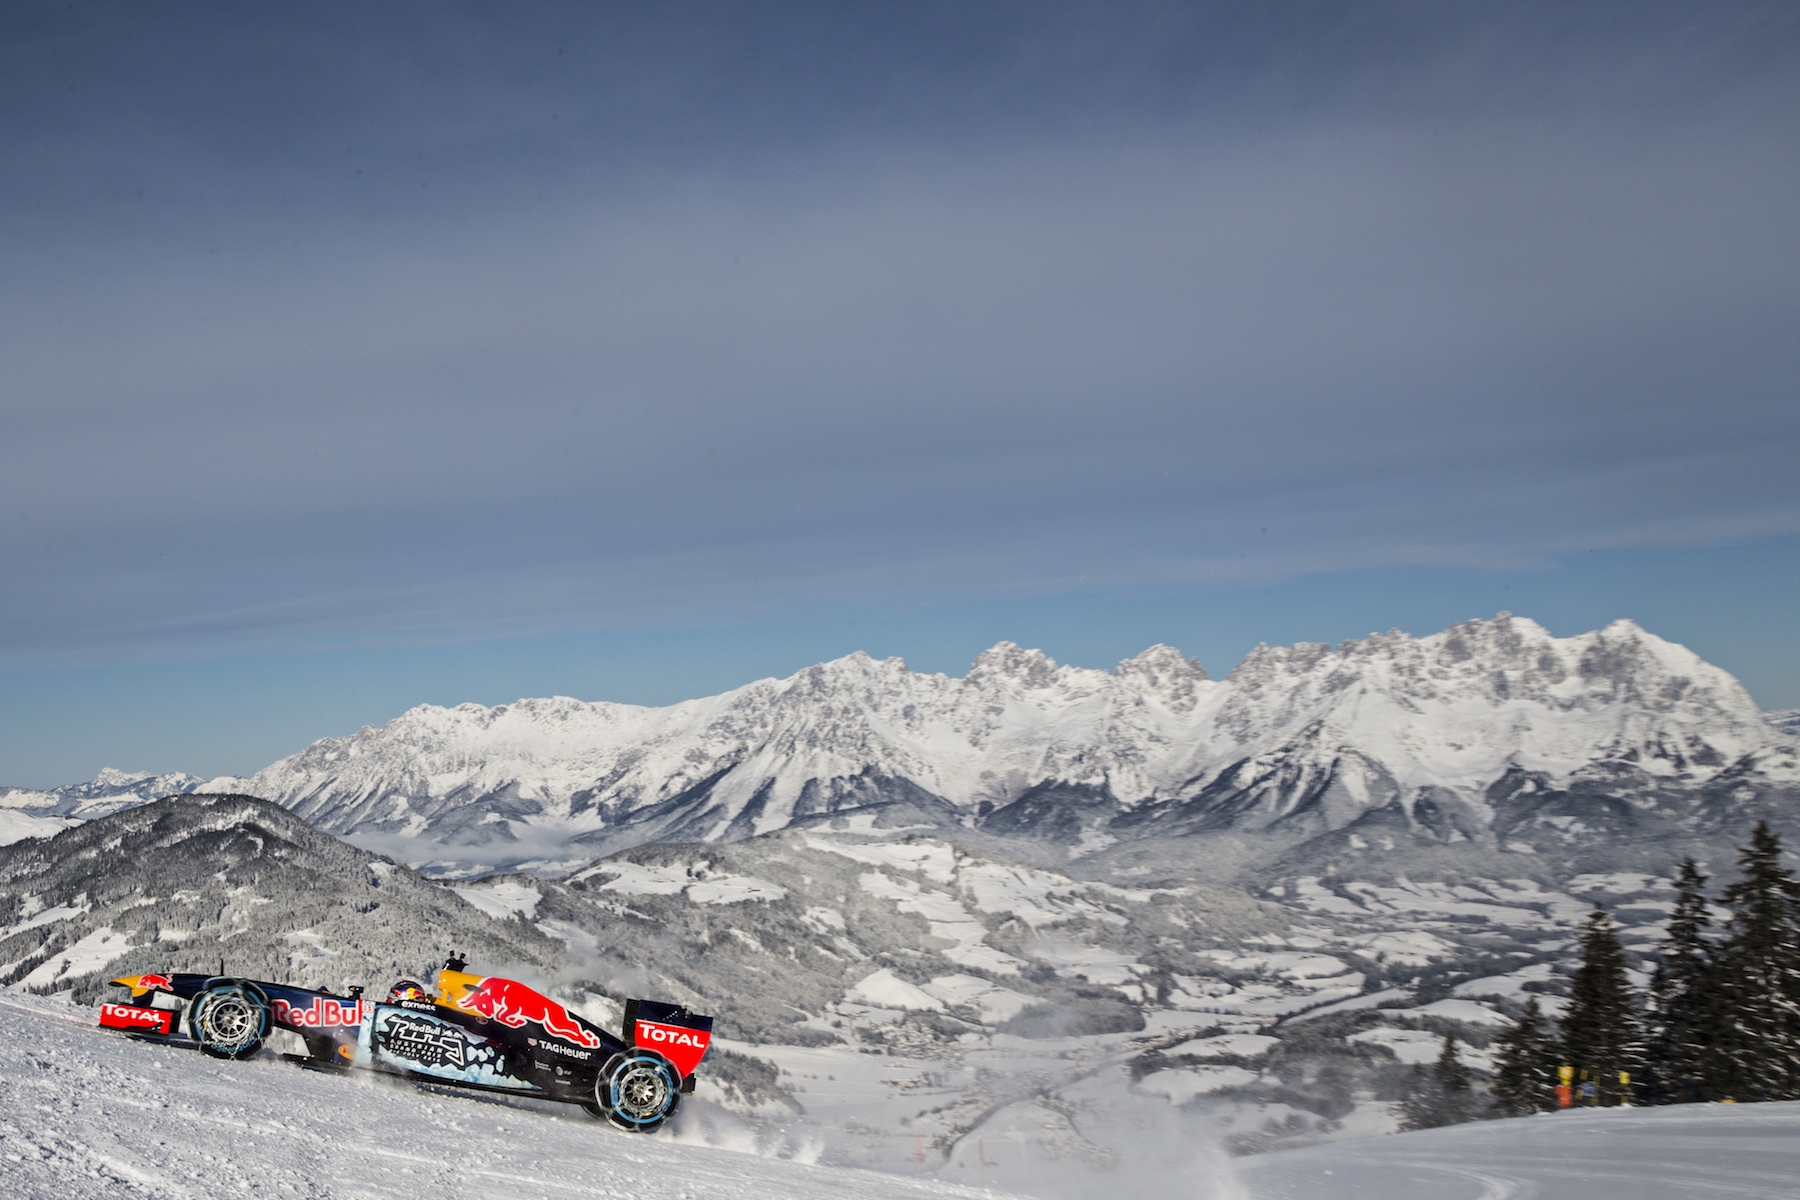 The Red Bull RB7 in beautiful Austria